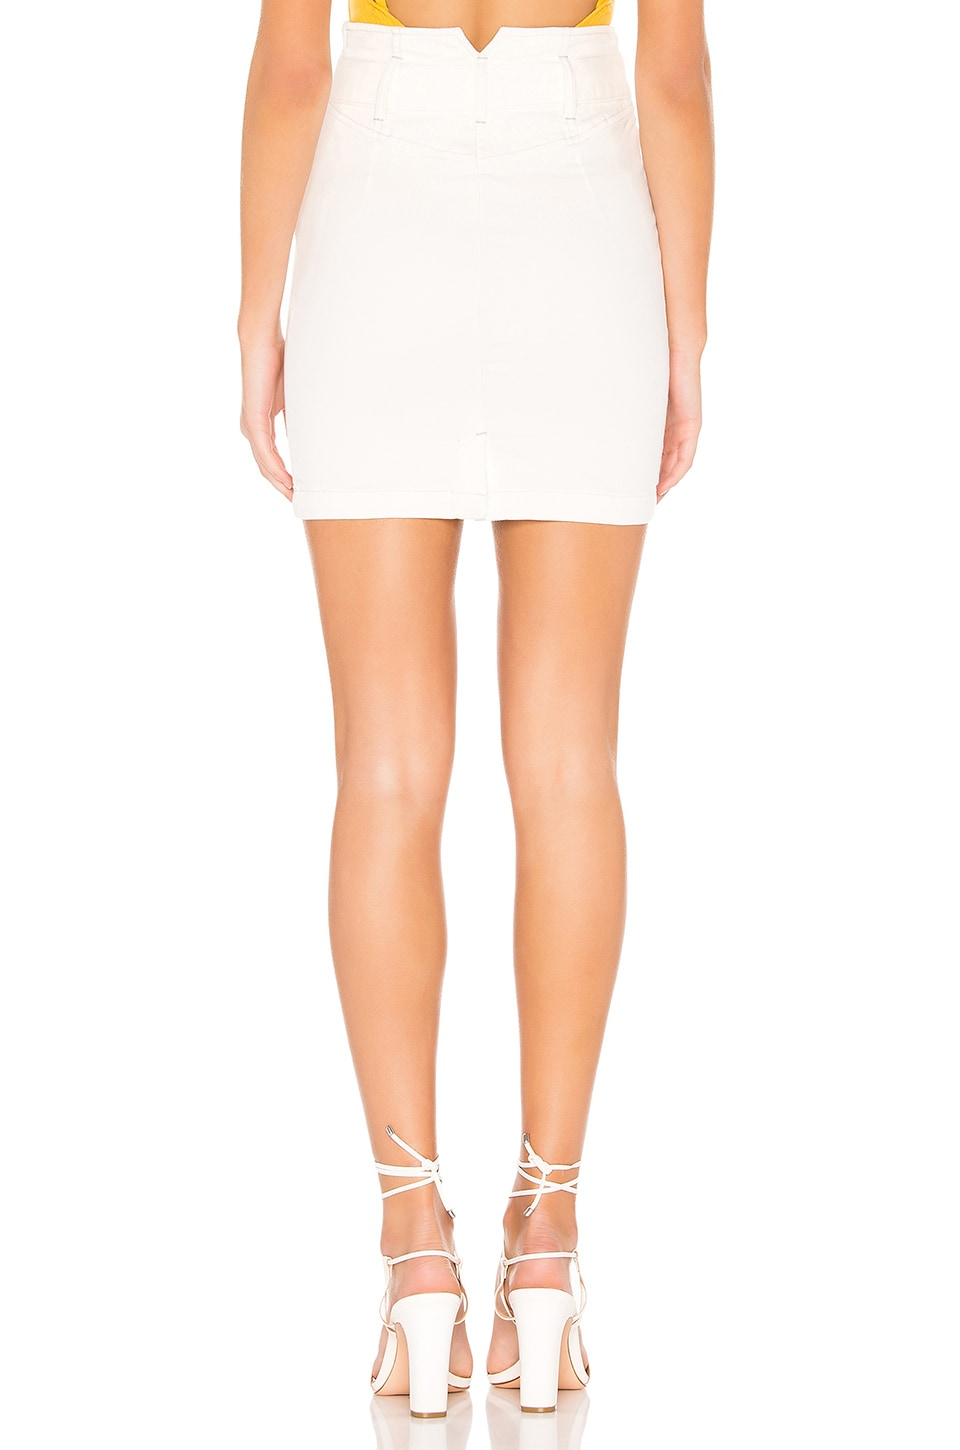 Free People Skirts Livin It Up Pencil Skirt